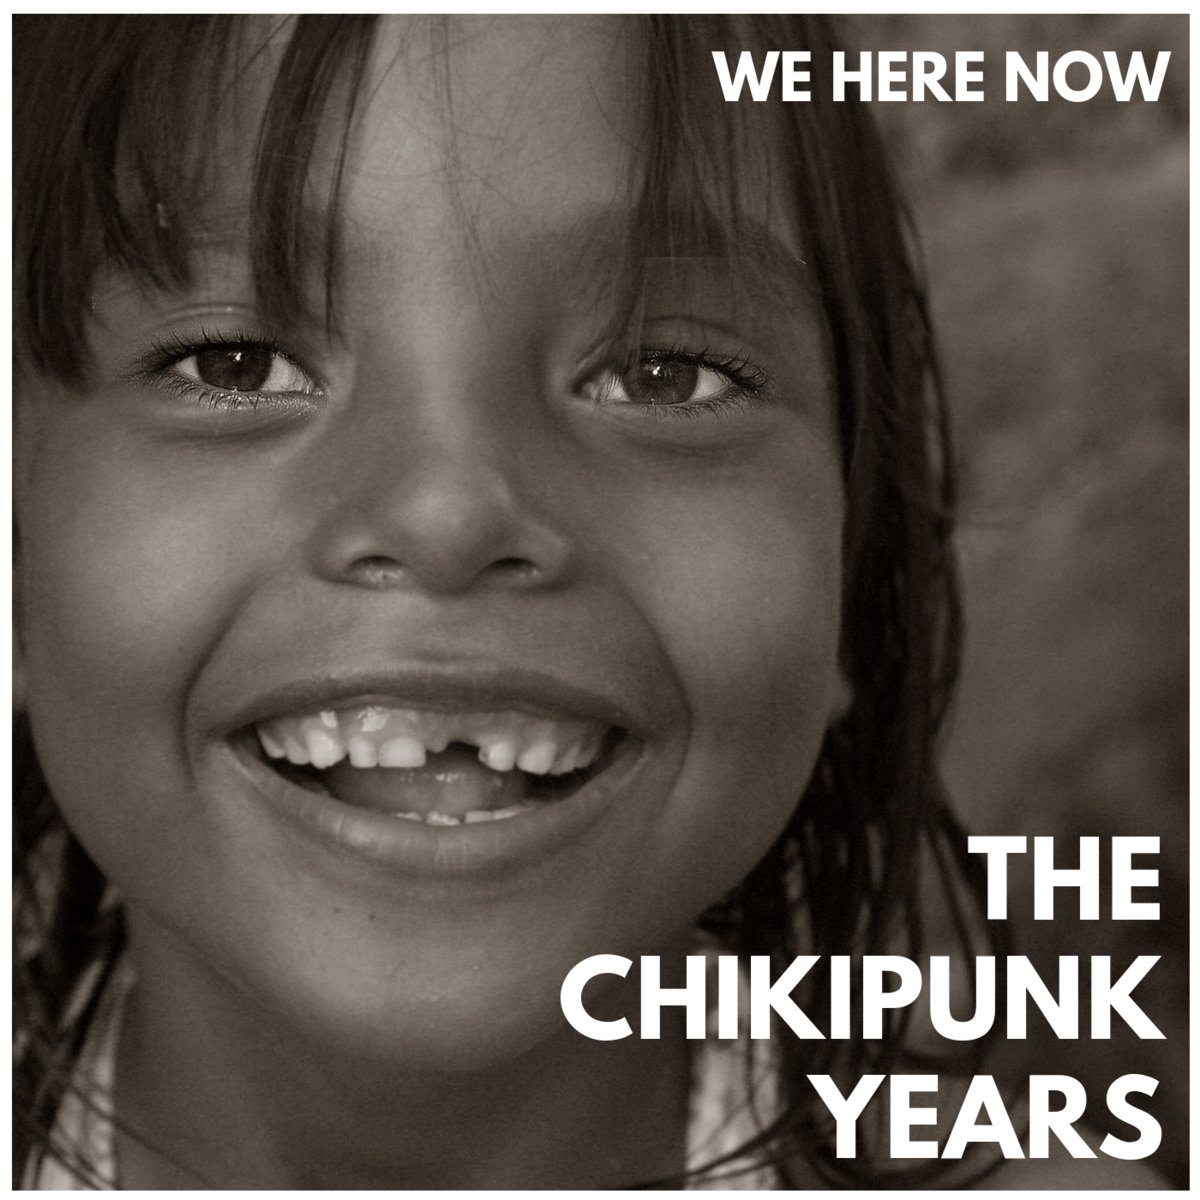 we here now the chikipunk years